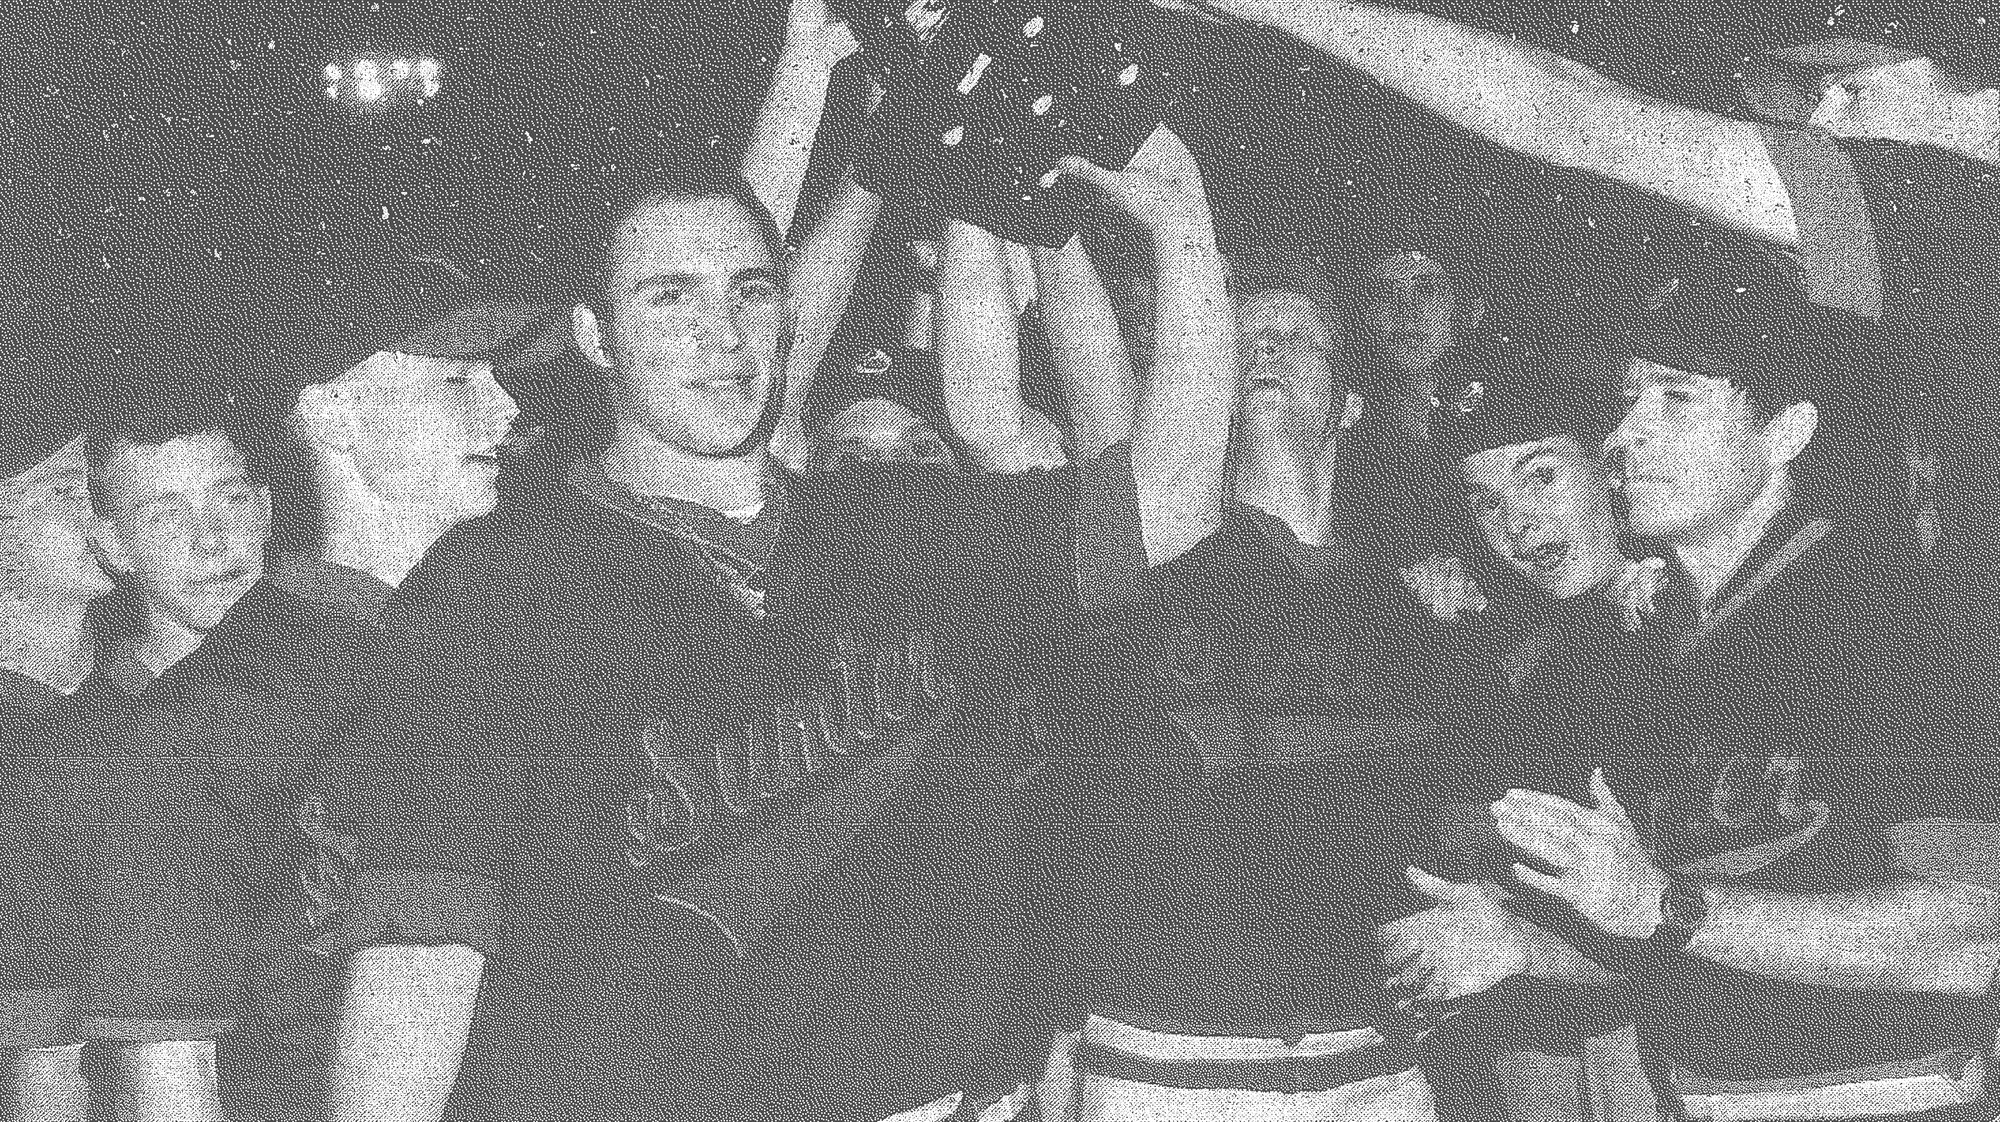 Aug. 14, 1994 - Sumter's P-15's hold their trophy aloft after claiming their fourth-consecutive American Legion baseball state championship with a 3-2 win over Irmo at Riley Park on Aug. 7. The P-15's were to open play in the Southeast Regional at Gainesville, Florida, on Aug. 19.